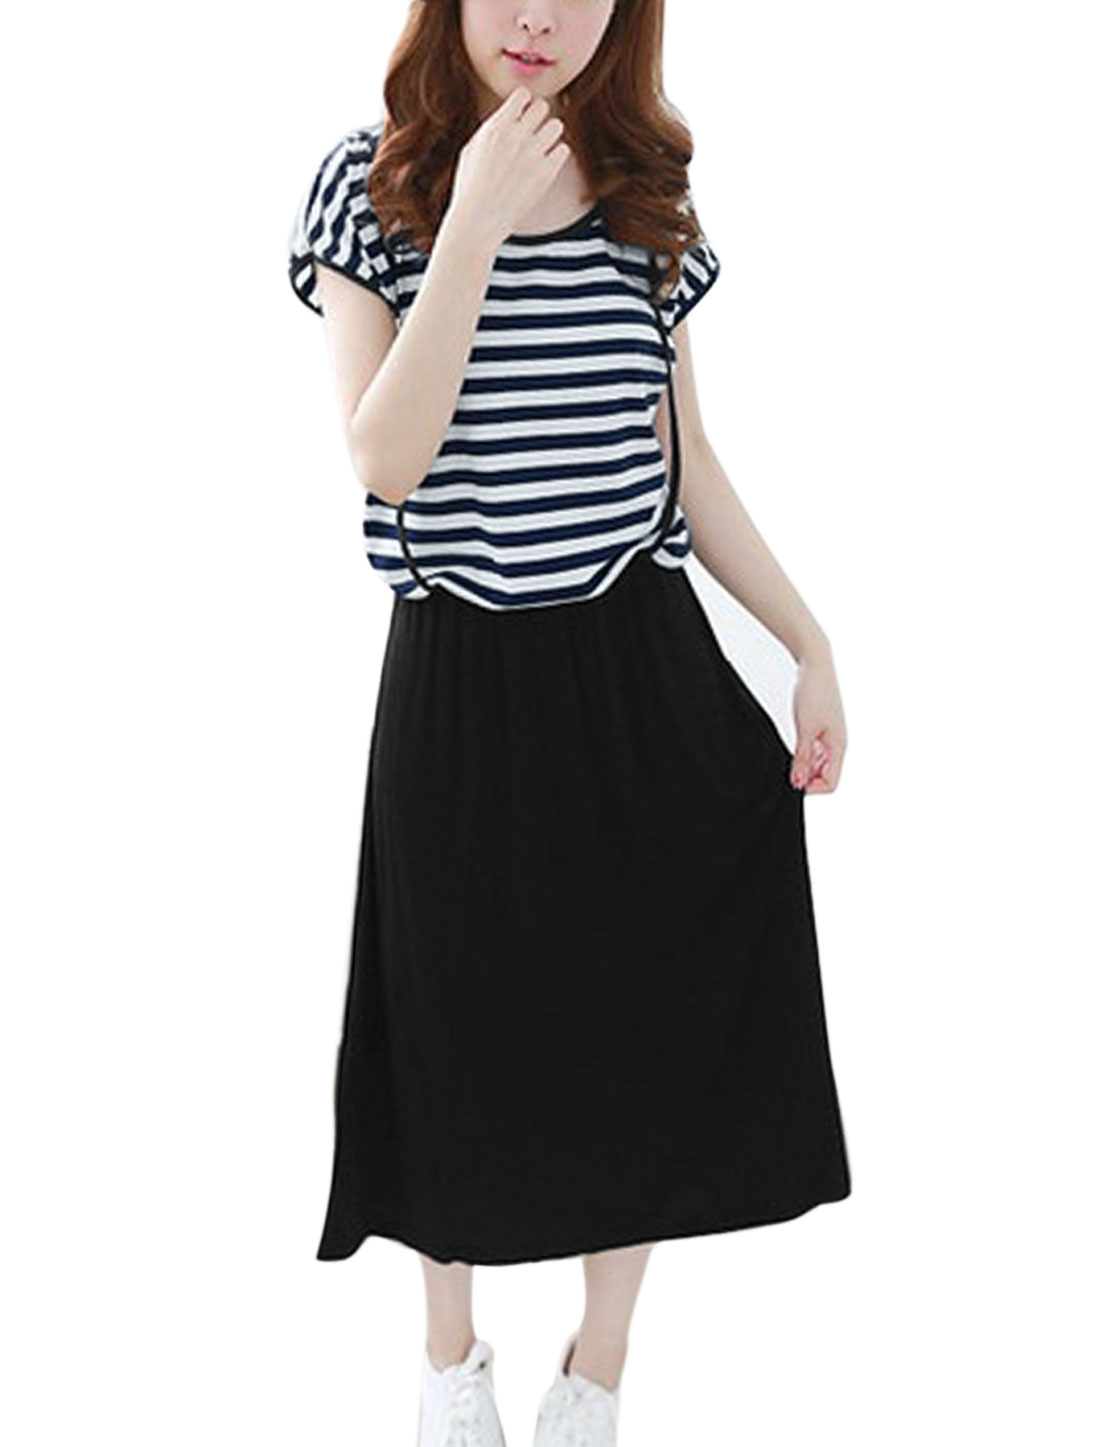 Women Elastic Waist Cross Straps Decor Straight Dress Navy Blue Black S